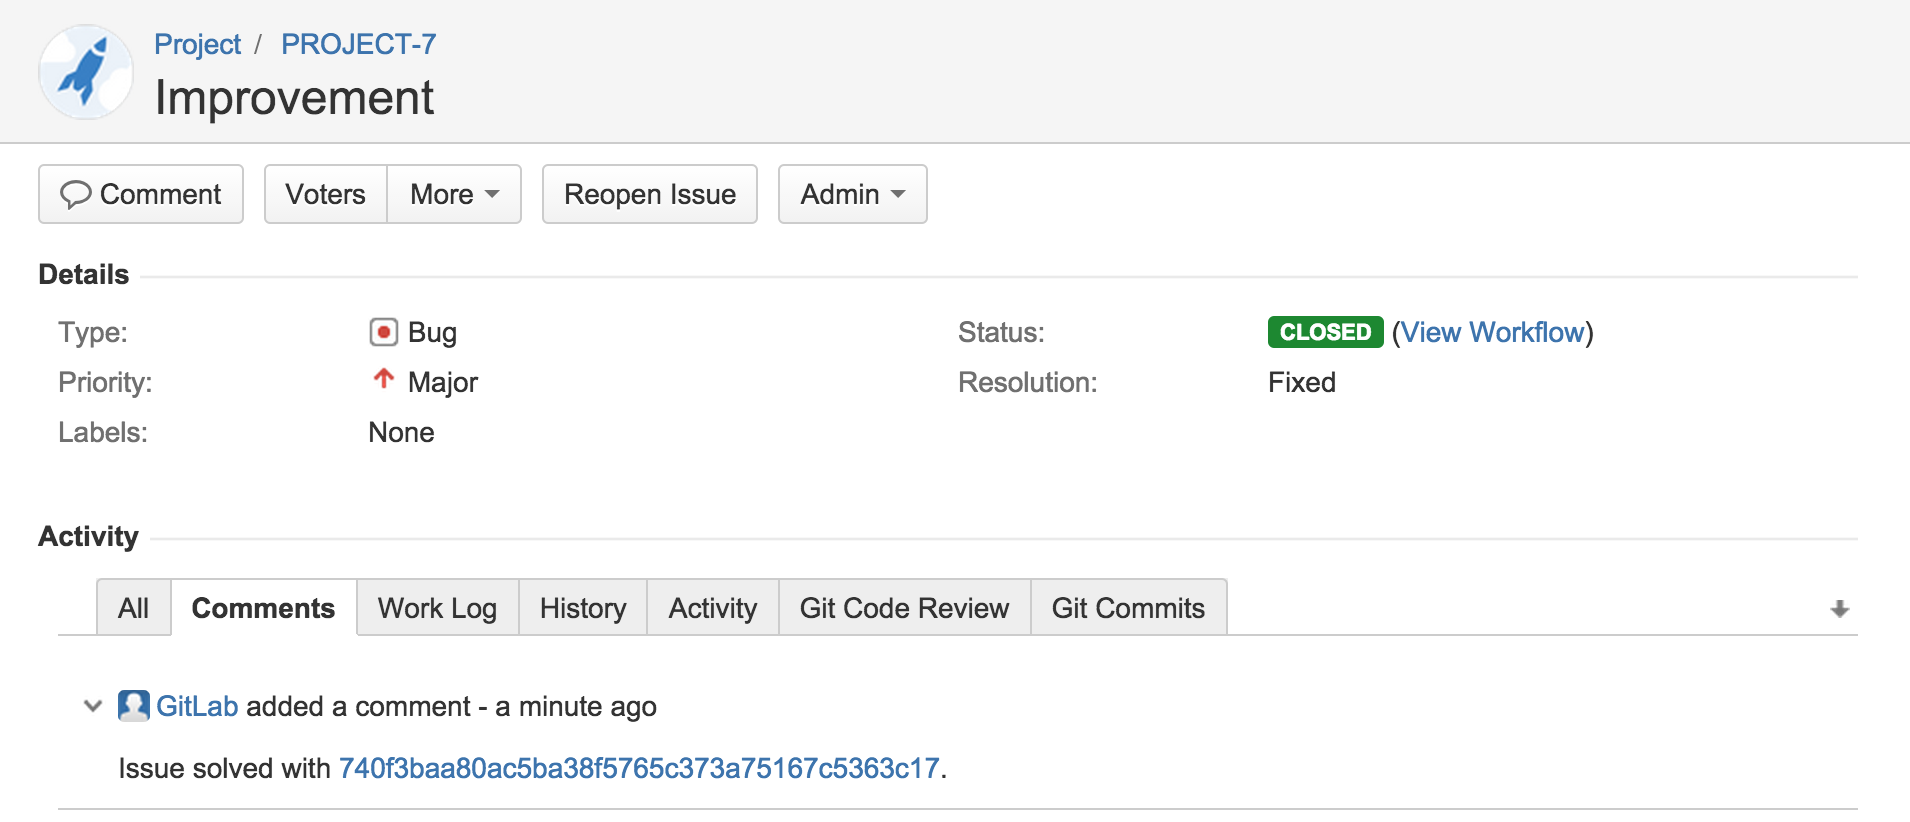 doc/project_services/img/jira_service_close_issue.png